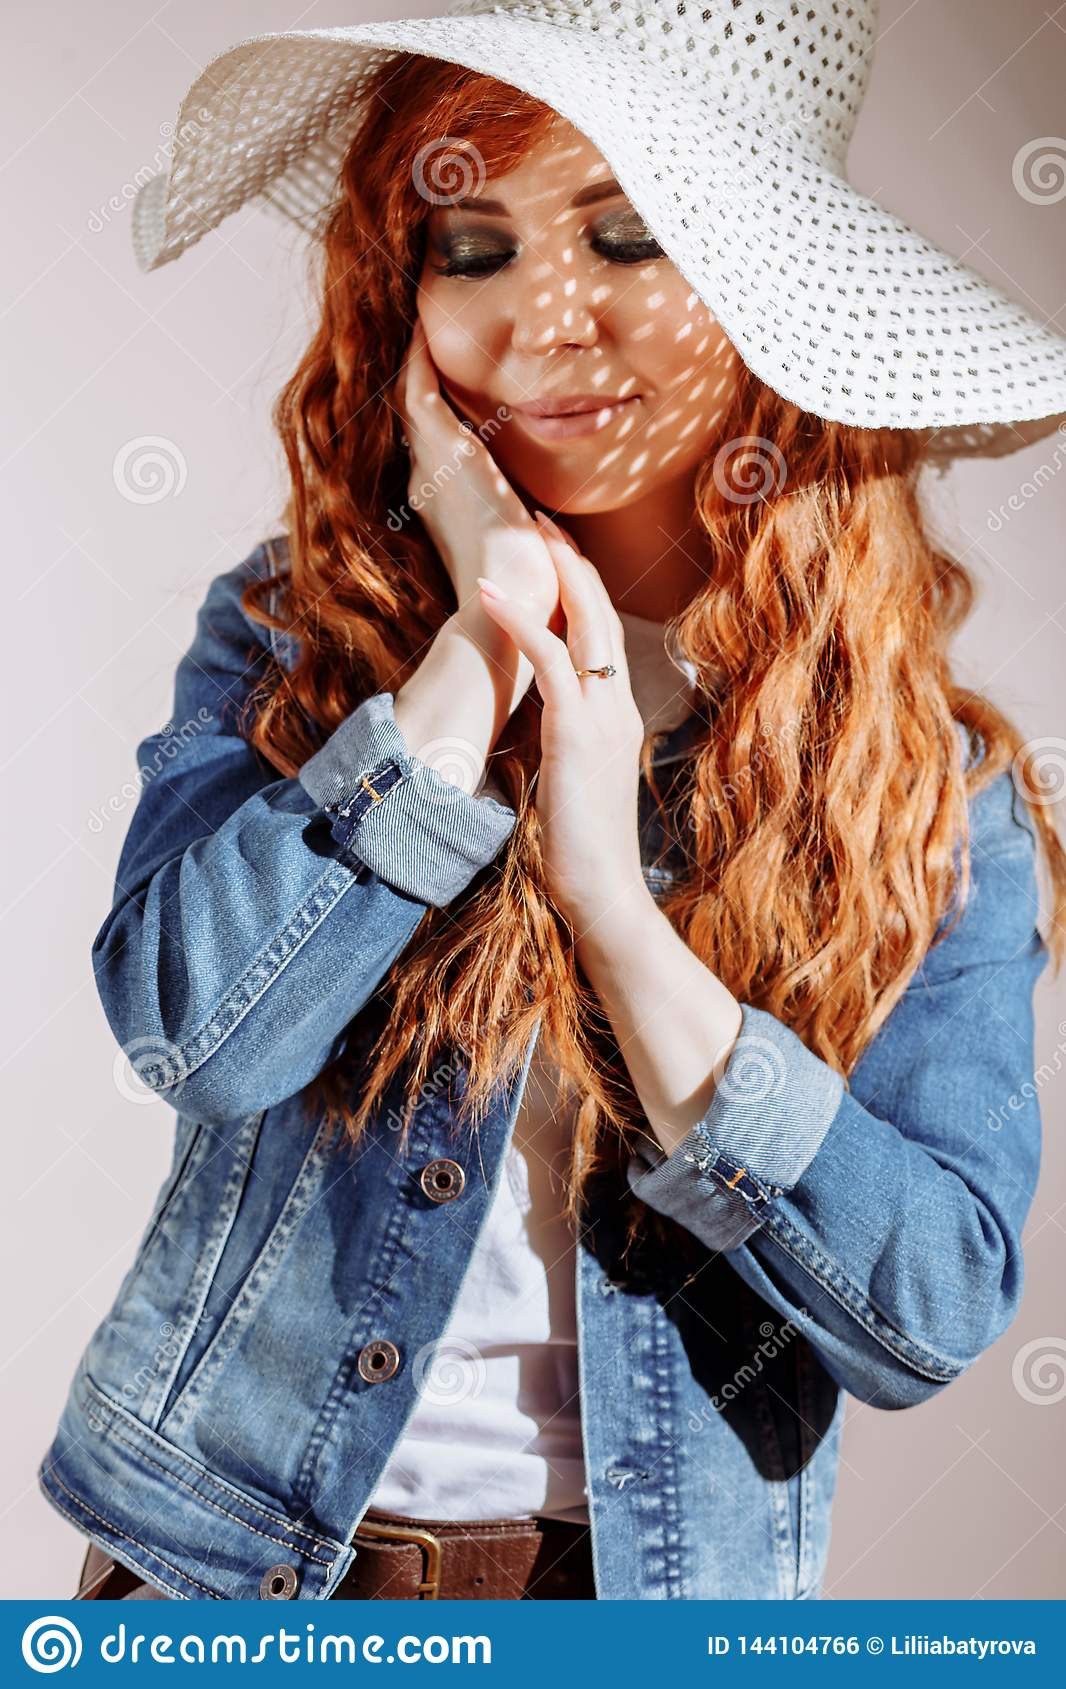 Redhead woman wearing hat on white background